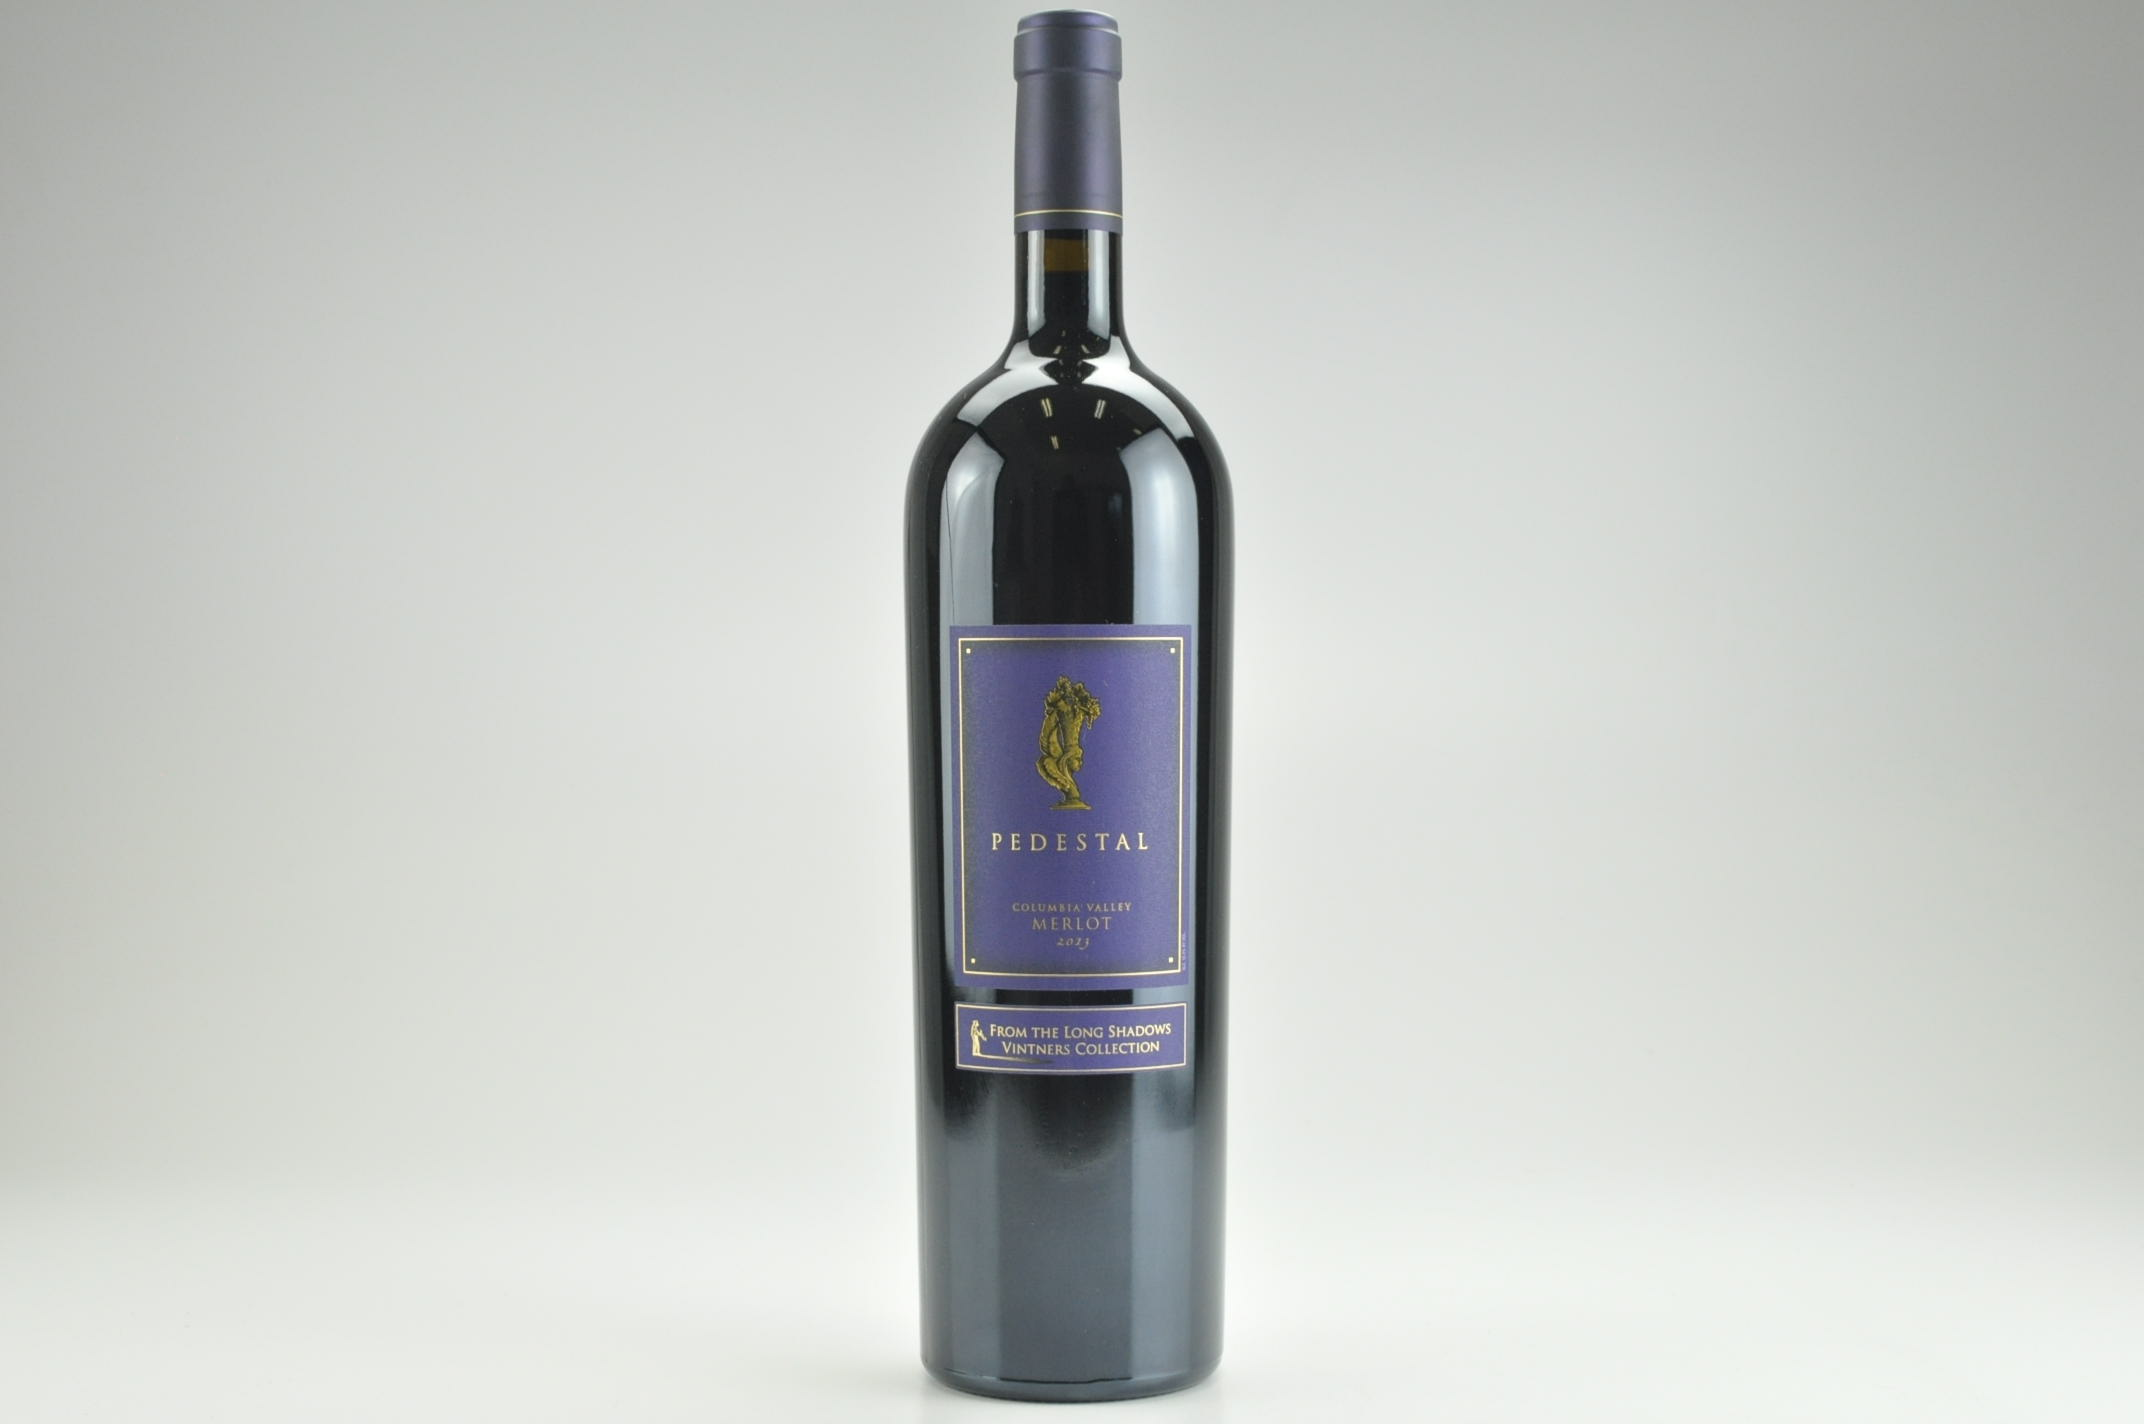 2013 Long Shadows Pedestal Merlot 1.5 L, Columbia Valley RP--94